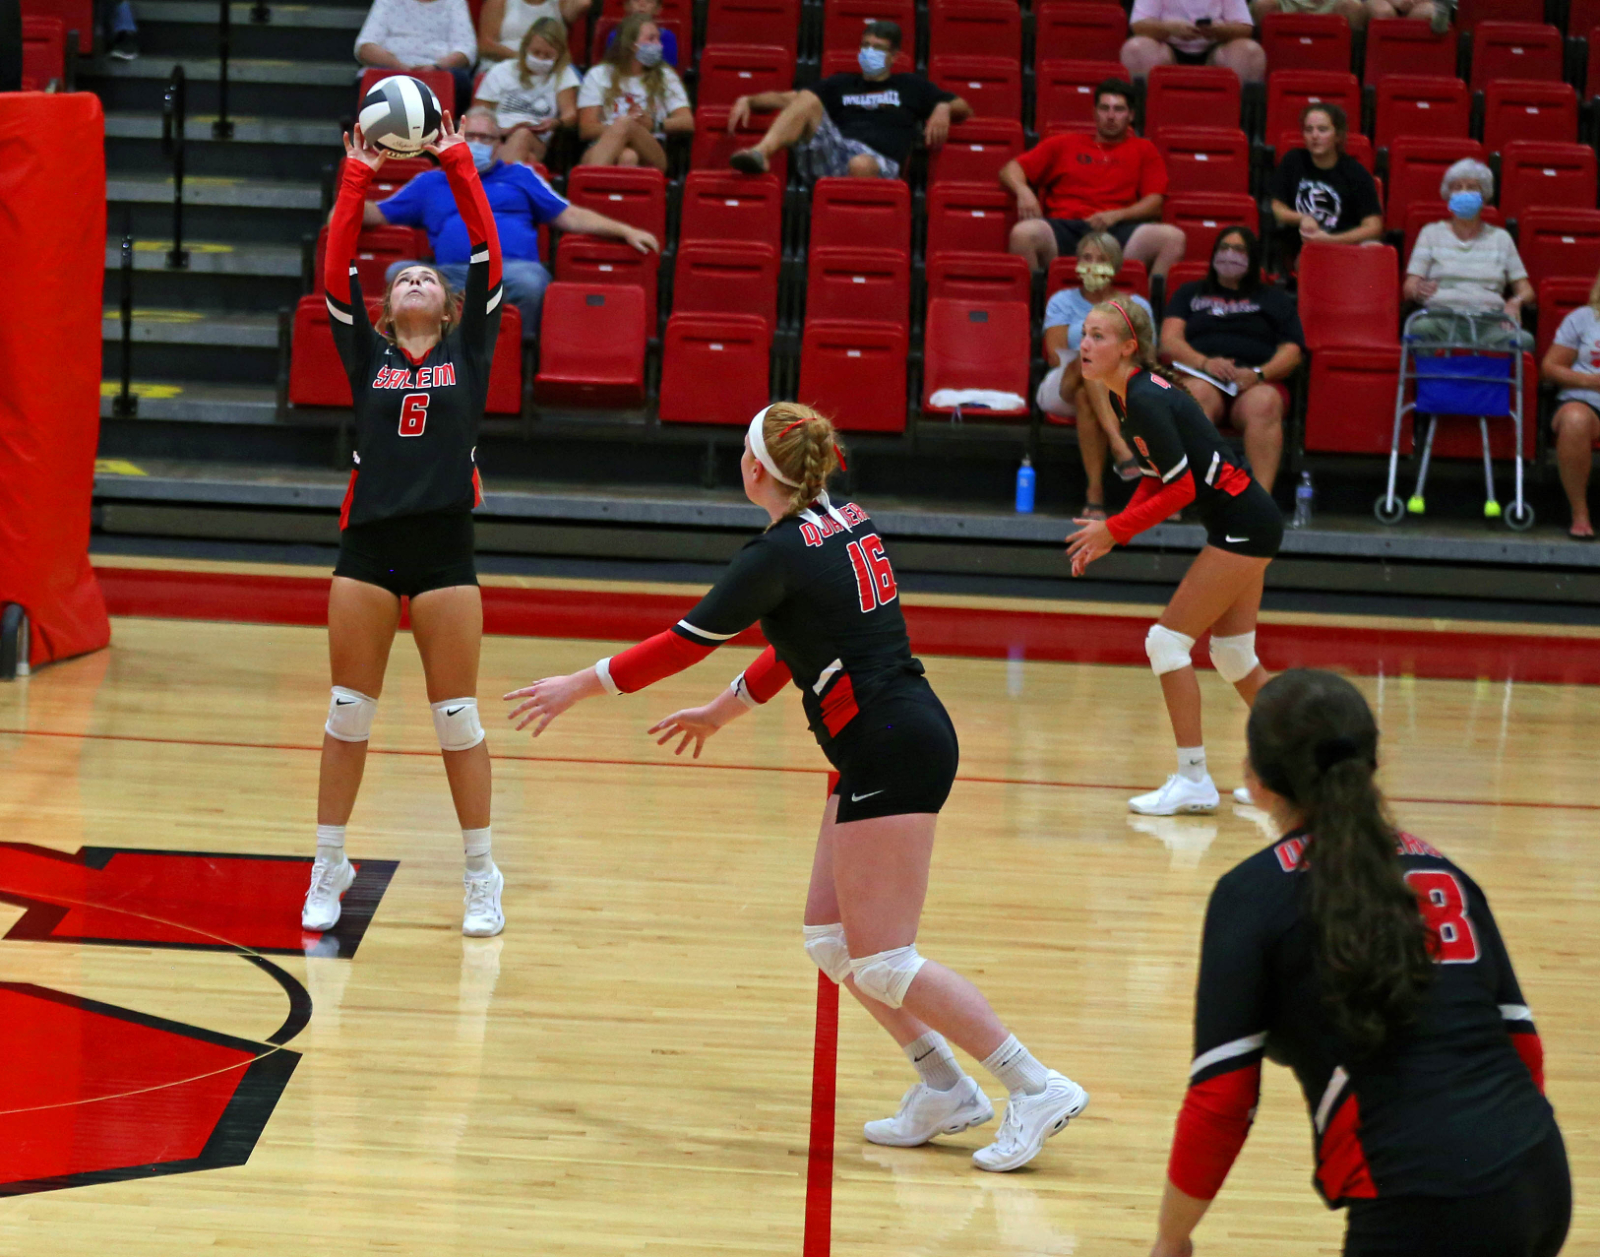 HS Volleyball Postponed Today